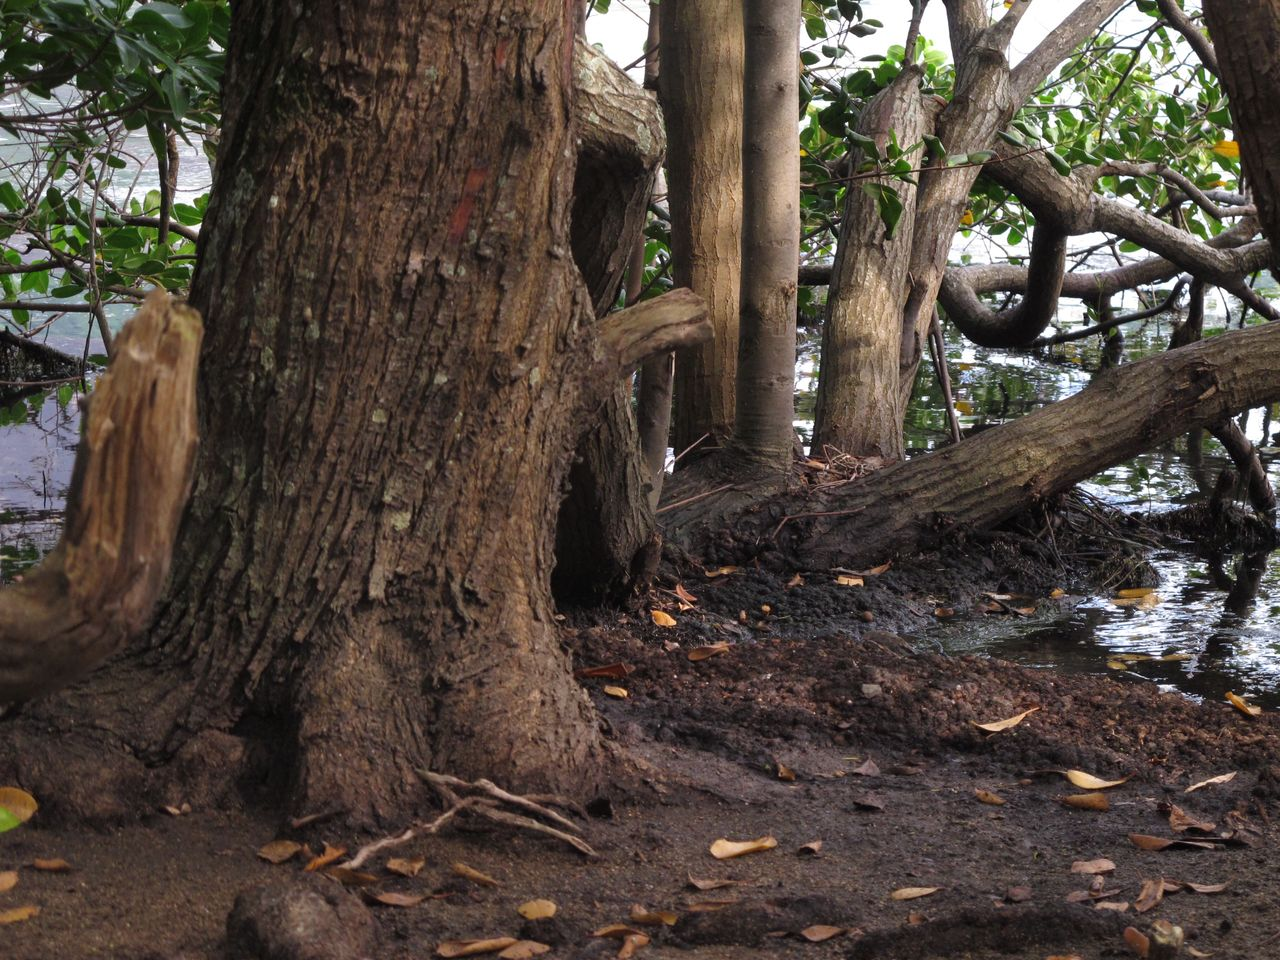 tree trunk, tree, nature, growth, outdoors, forest, branch, no people, day, beauty in nature